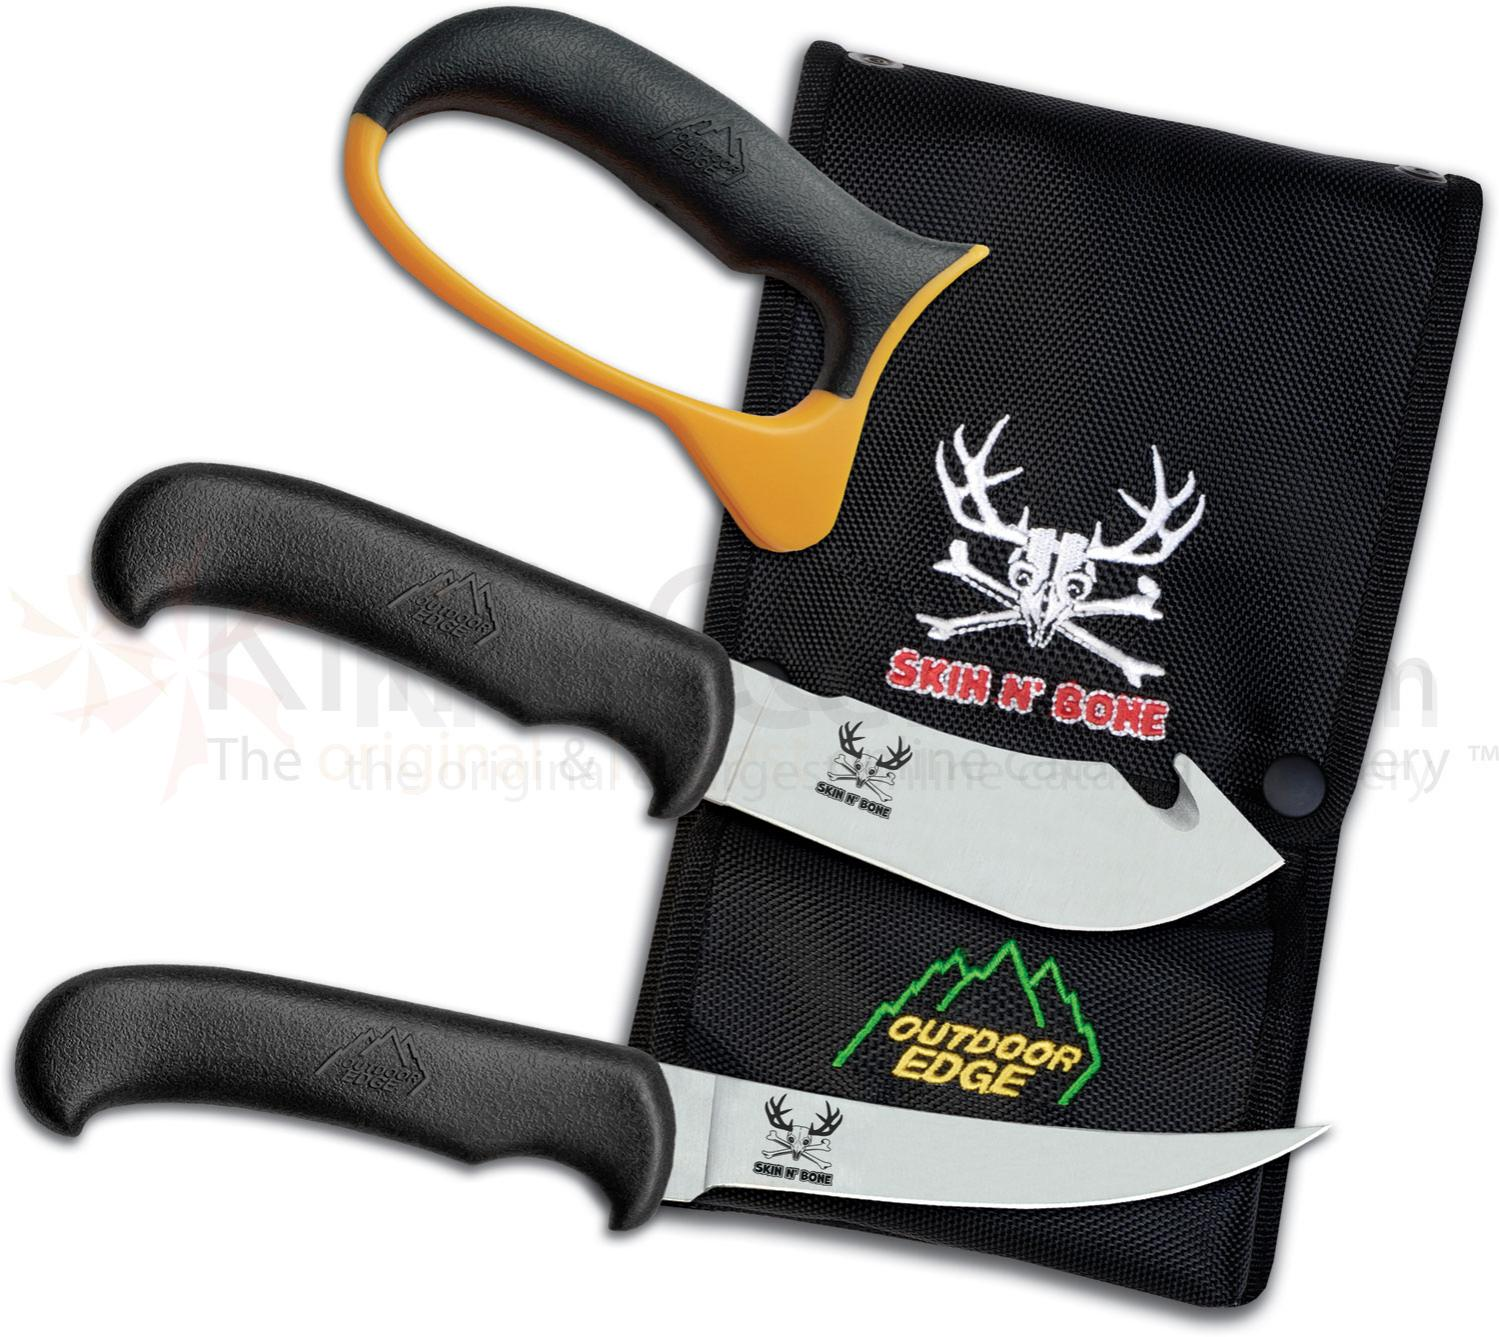 Outdoor Edge Skin n' Bone Hunter's Combo Set with Nylon Pouch